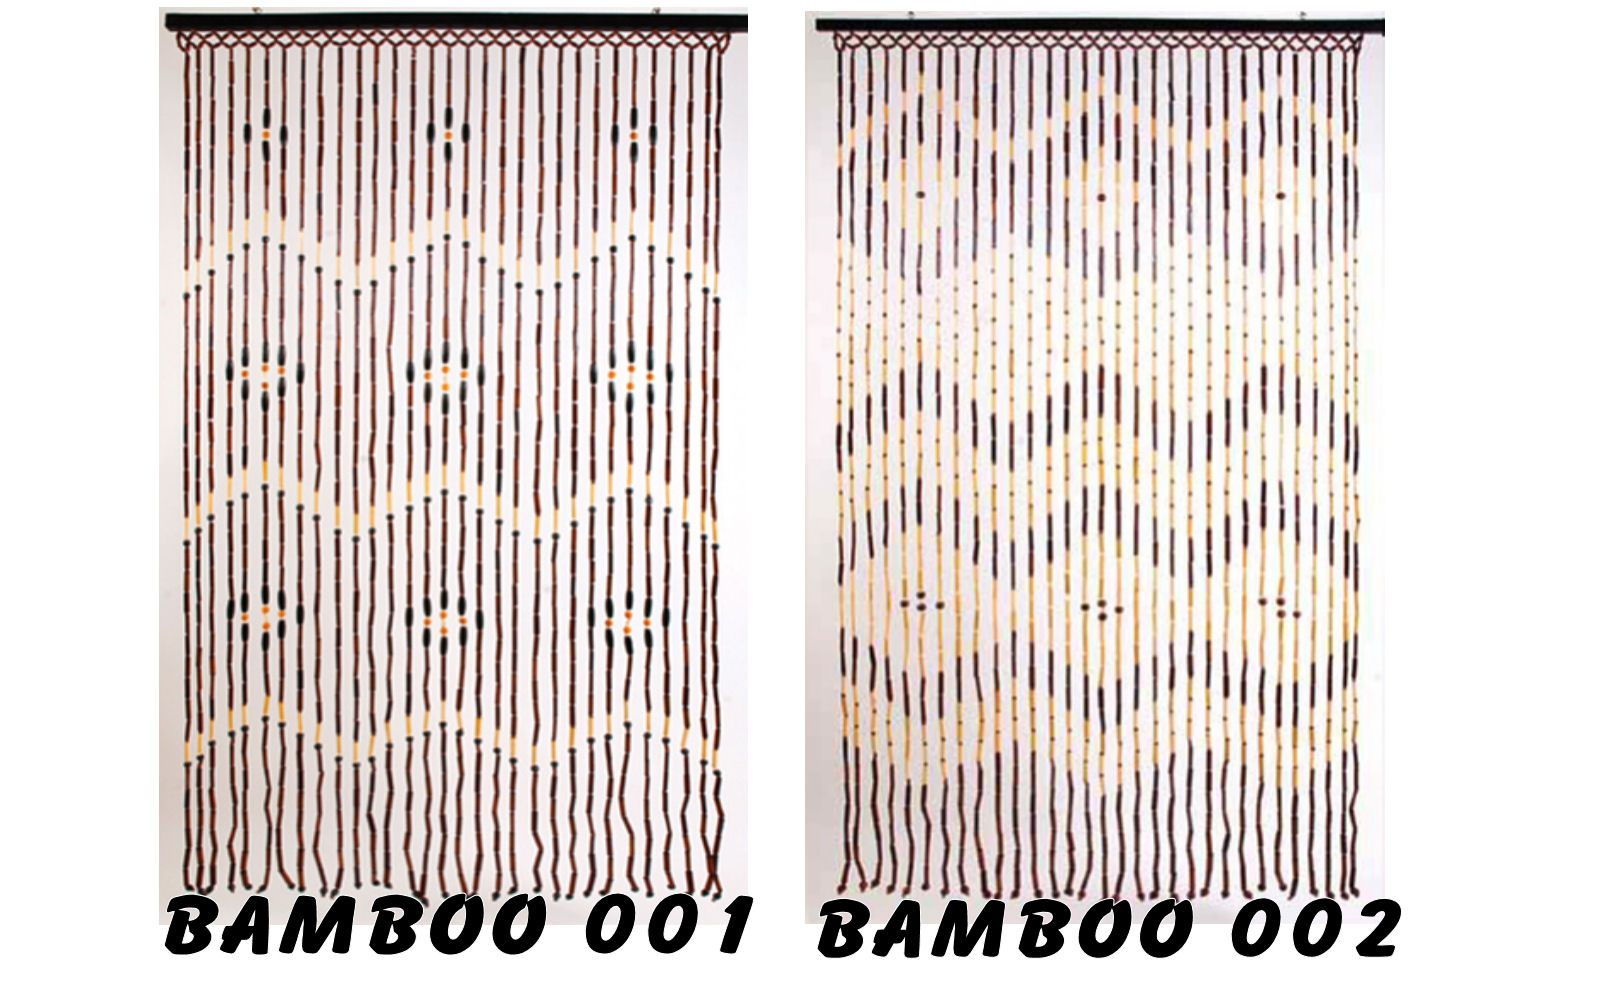 bamboo beaded door curtain blind decorative door screen 2